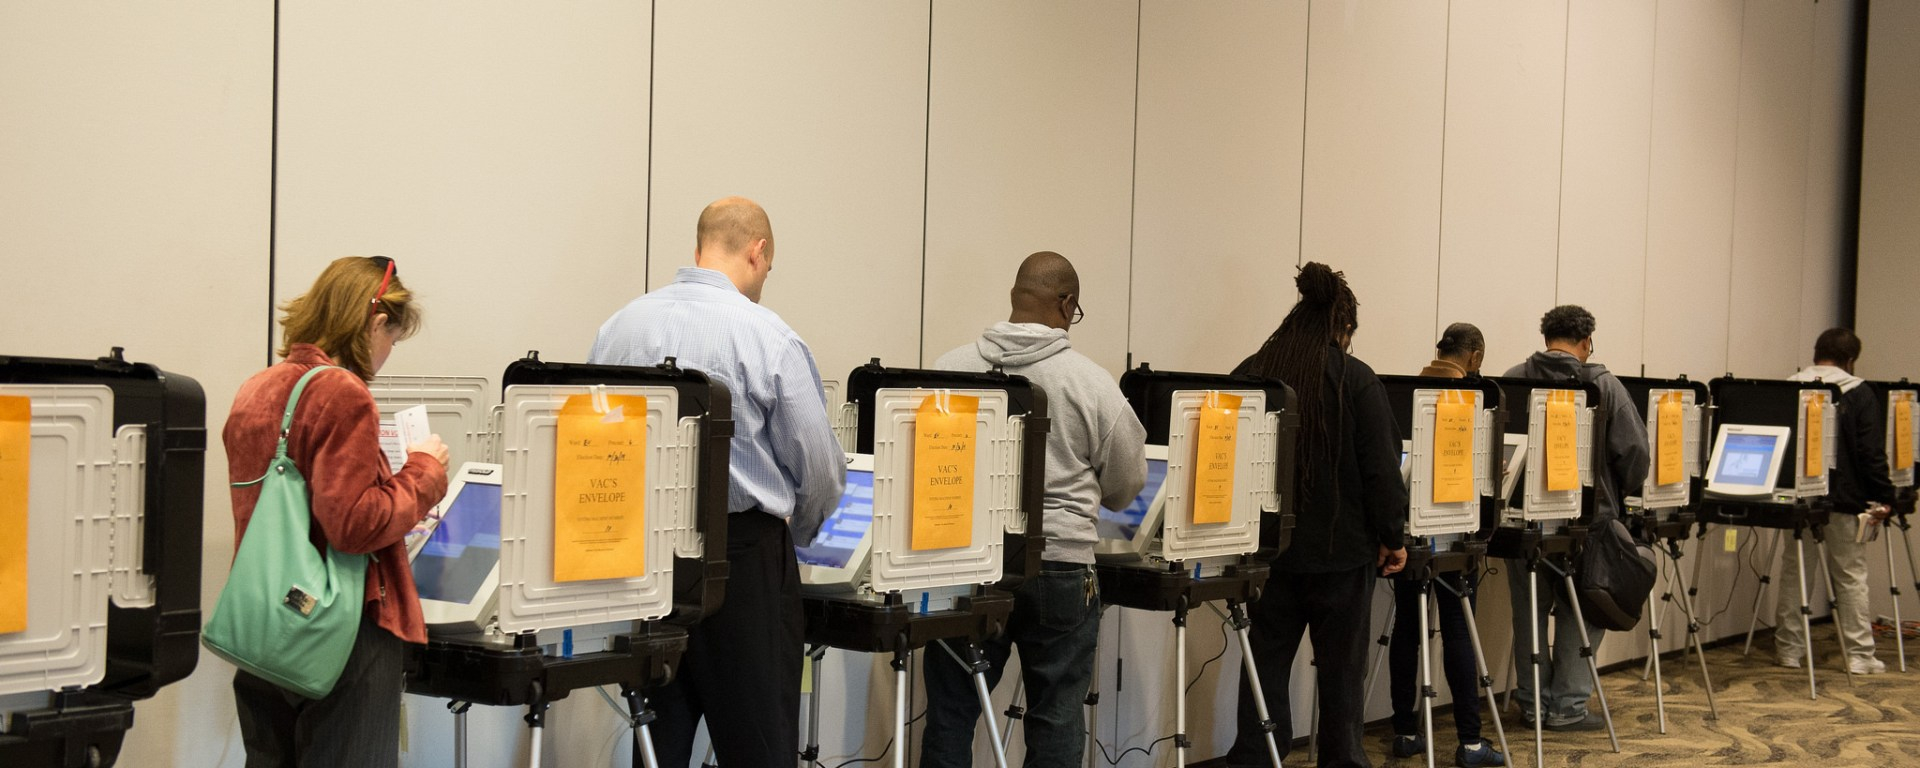 Voting in Baltimore